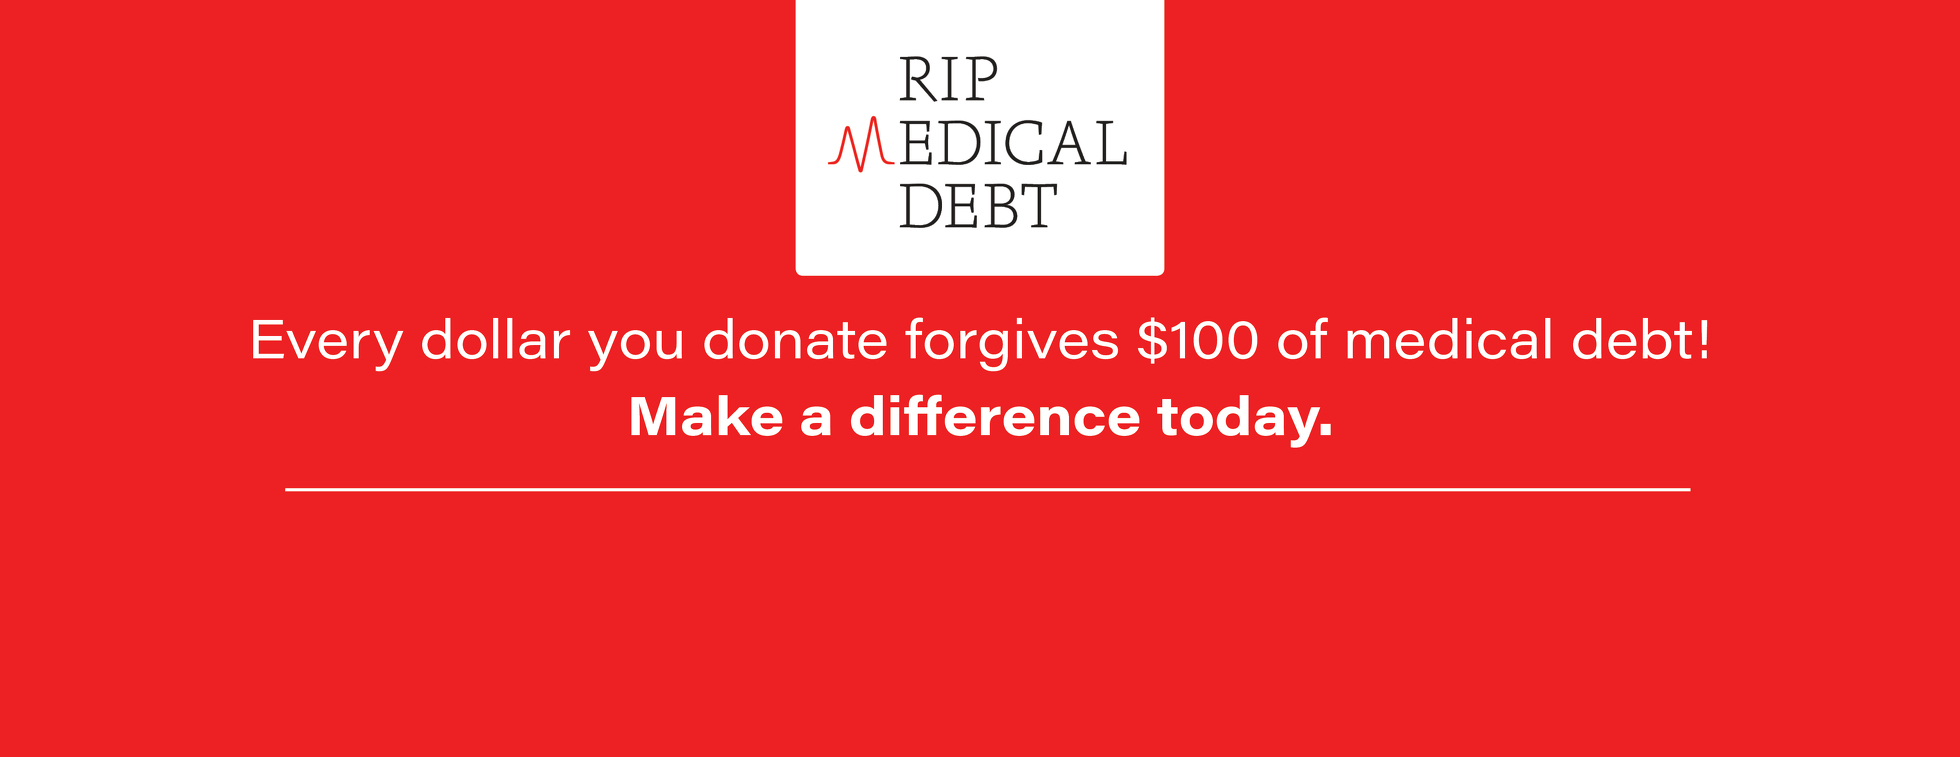 Christians for SWFL's Campaign to Forgive $28.7M of Medical Debt